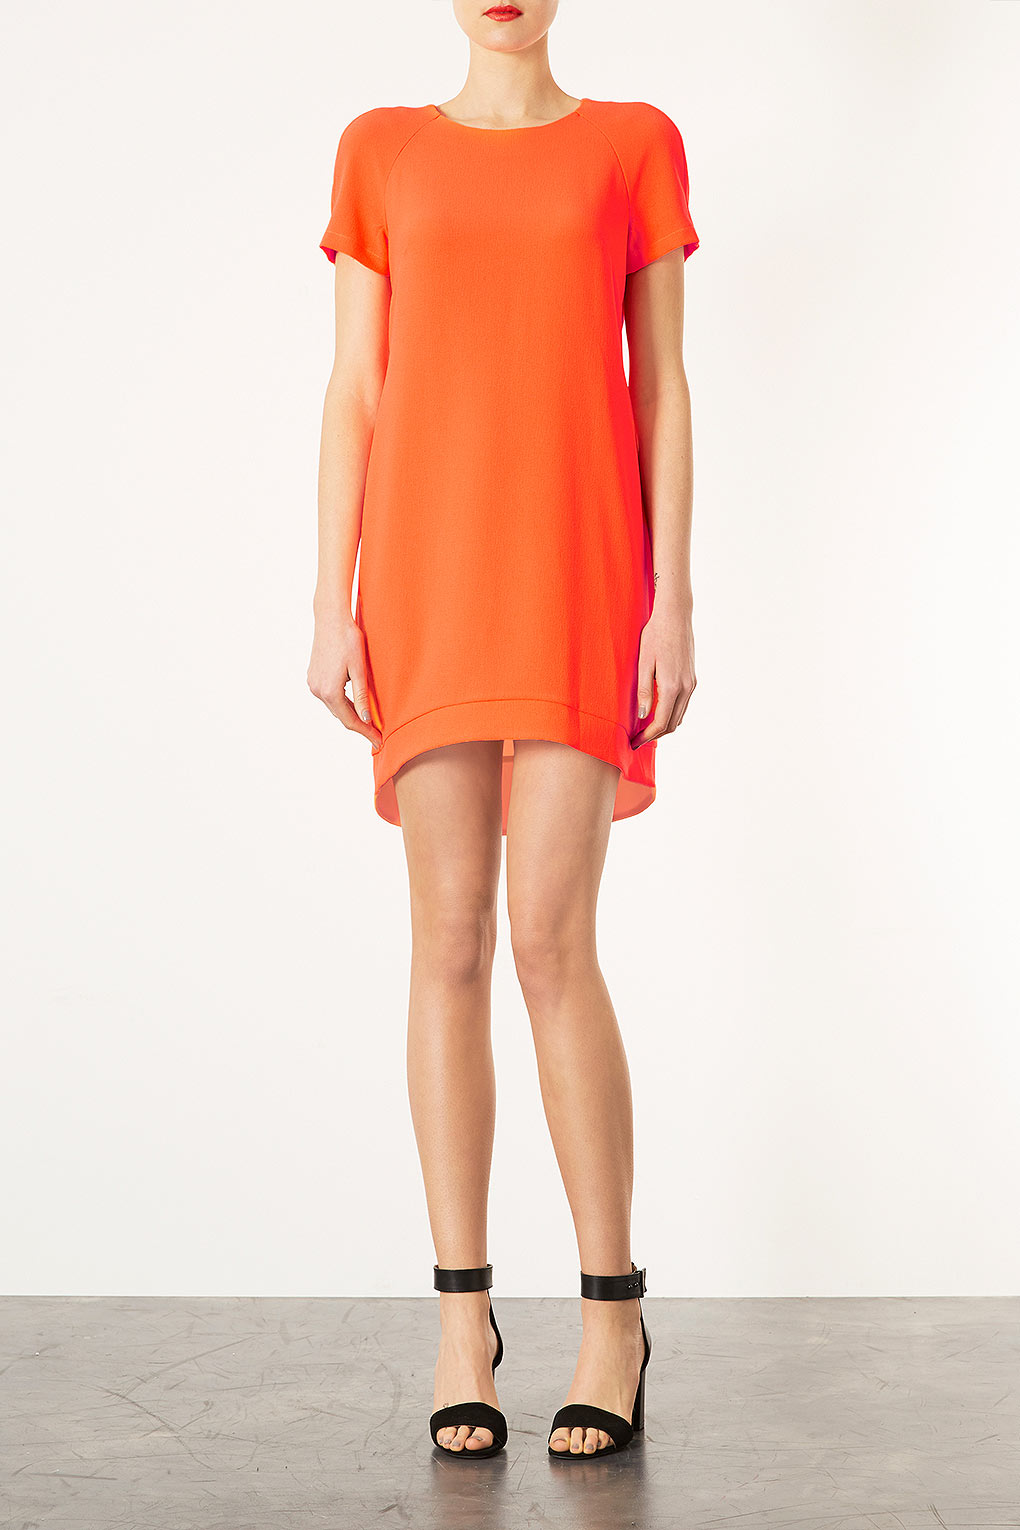 Orange Shift Dress River Island